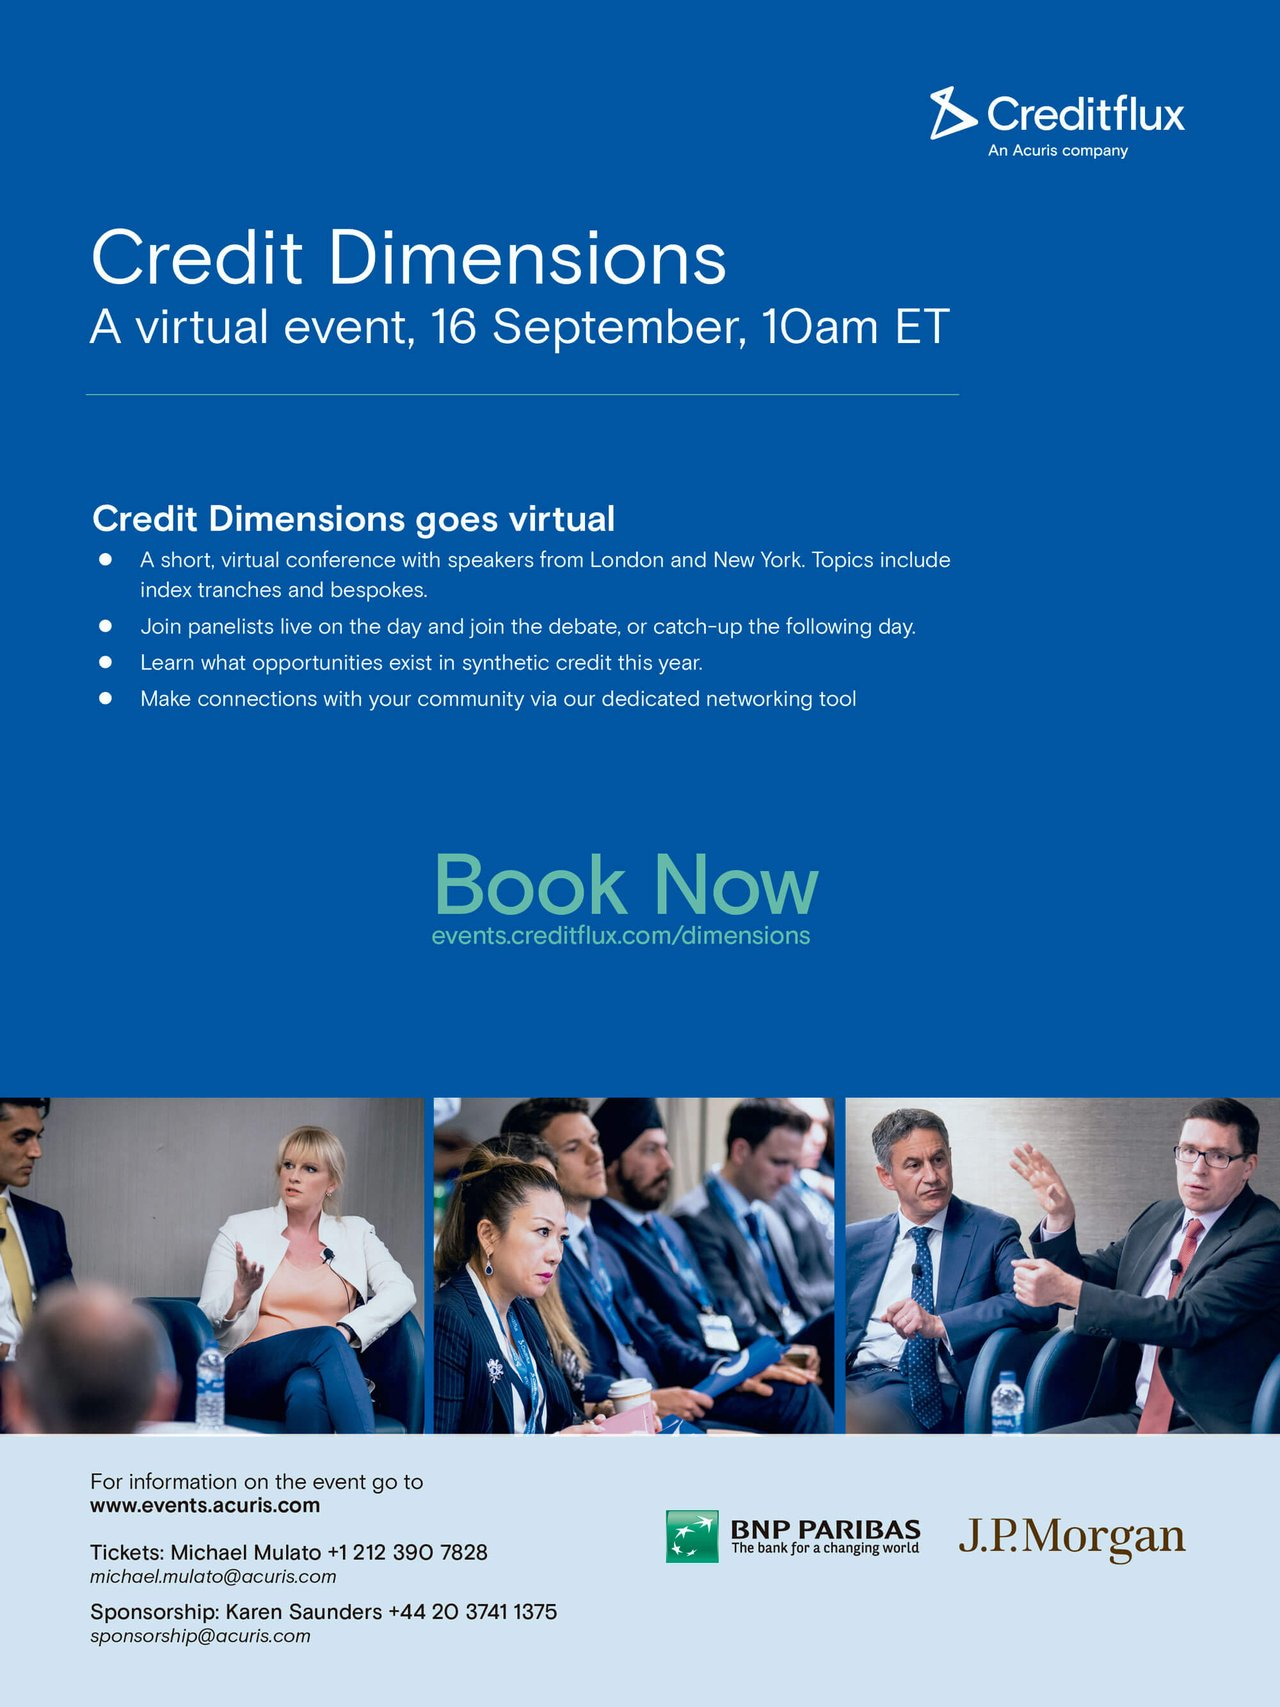 Creditflux-Dimensions-ad-book-now-August